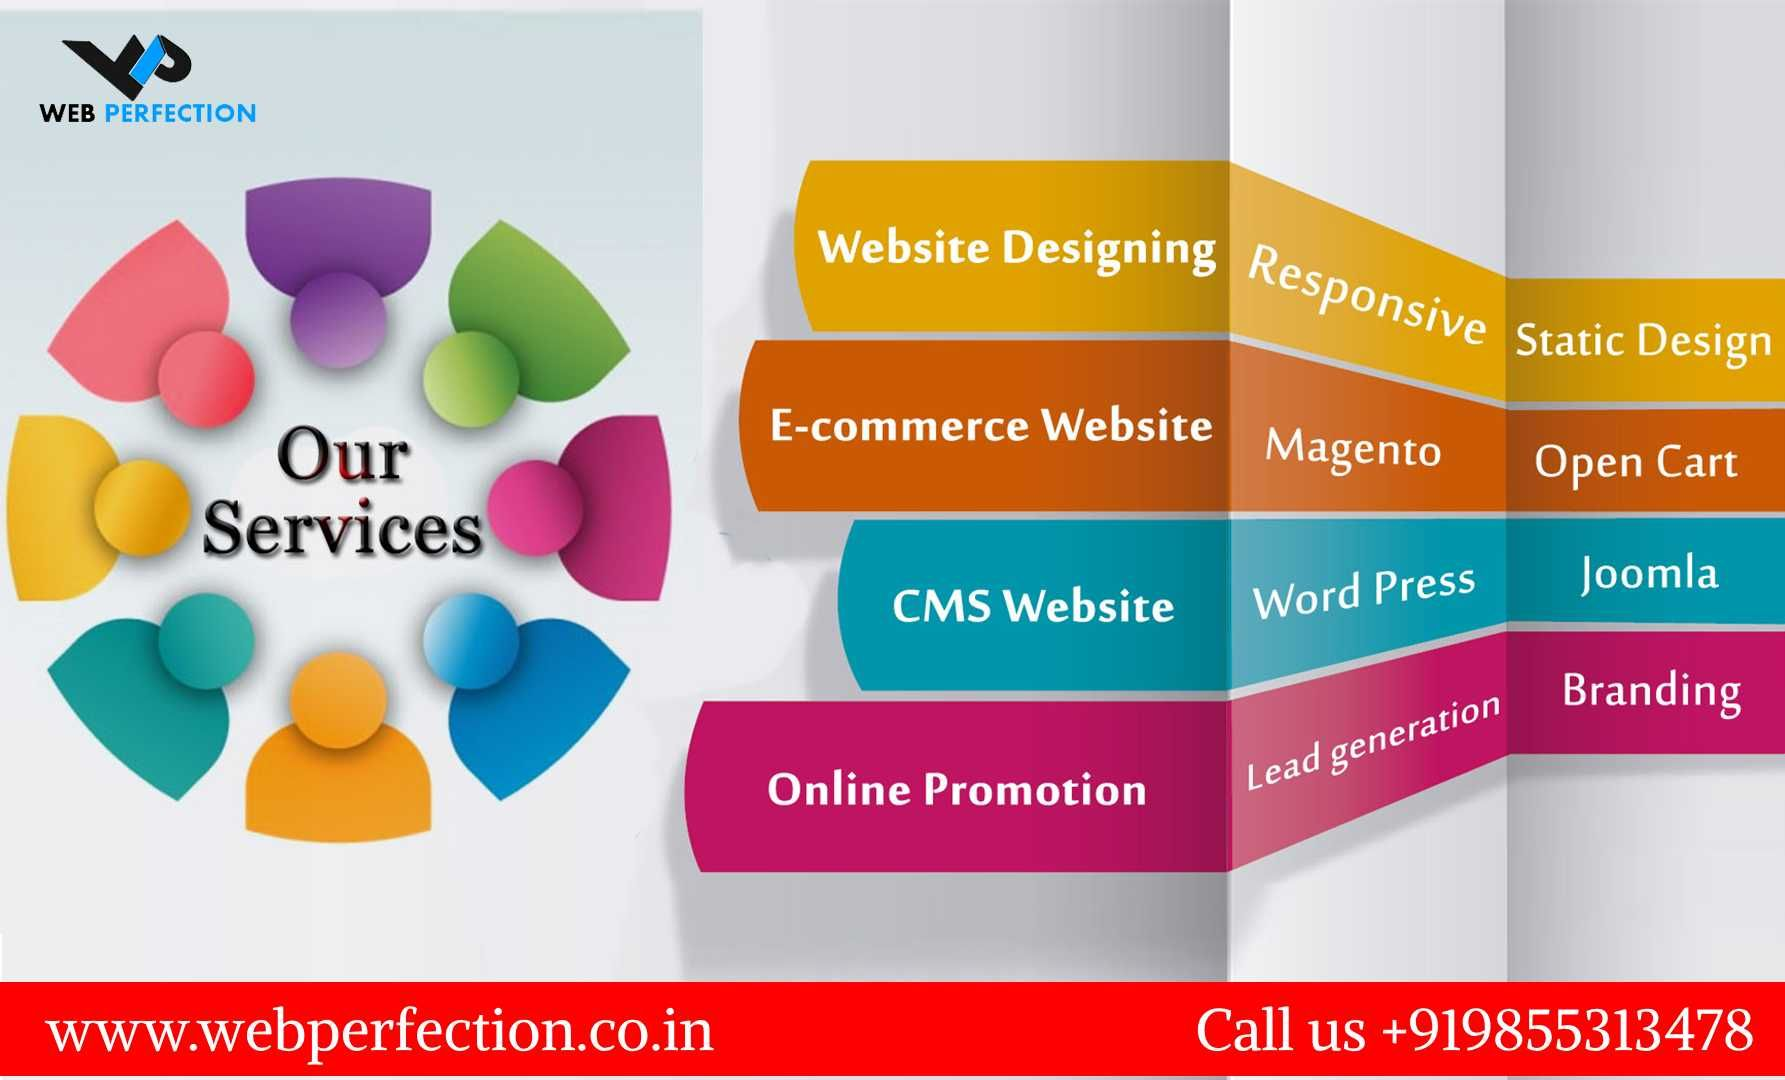 Our It Services Company In Chandigarh Providing The Best Quality Design Of A Website Web De Website Design Services Website Design Company Web Design Services